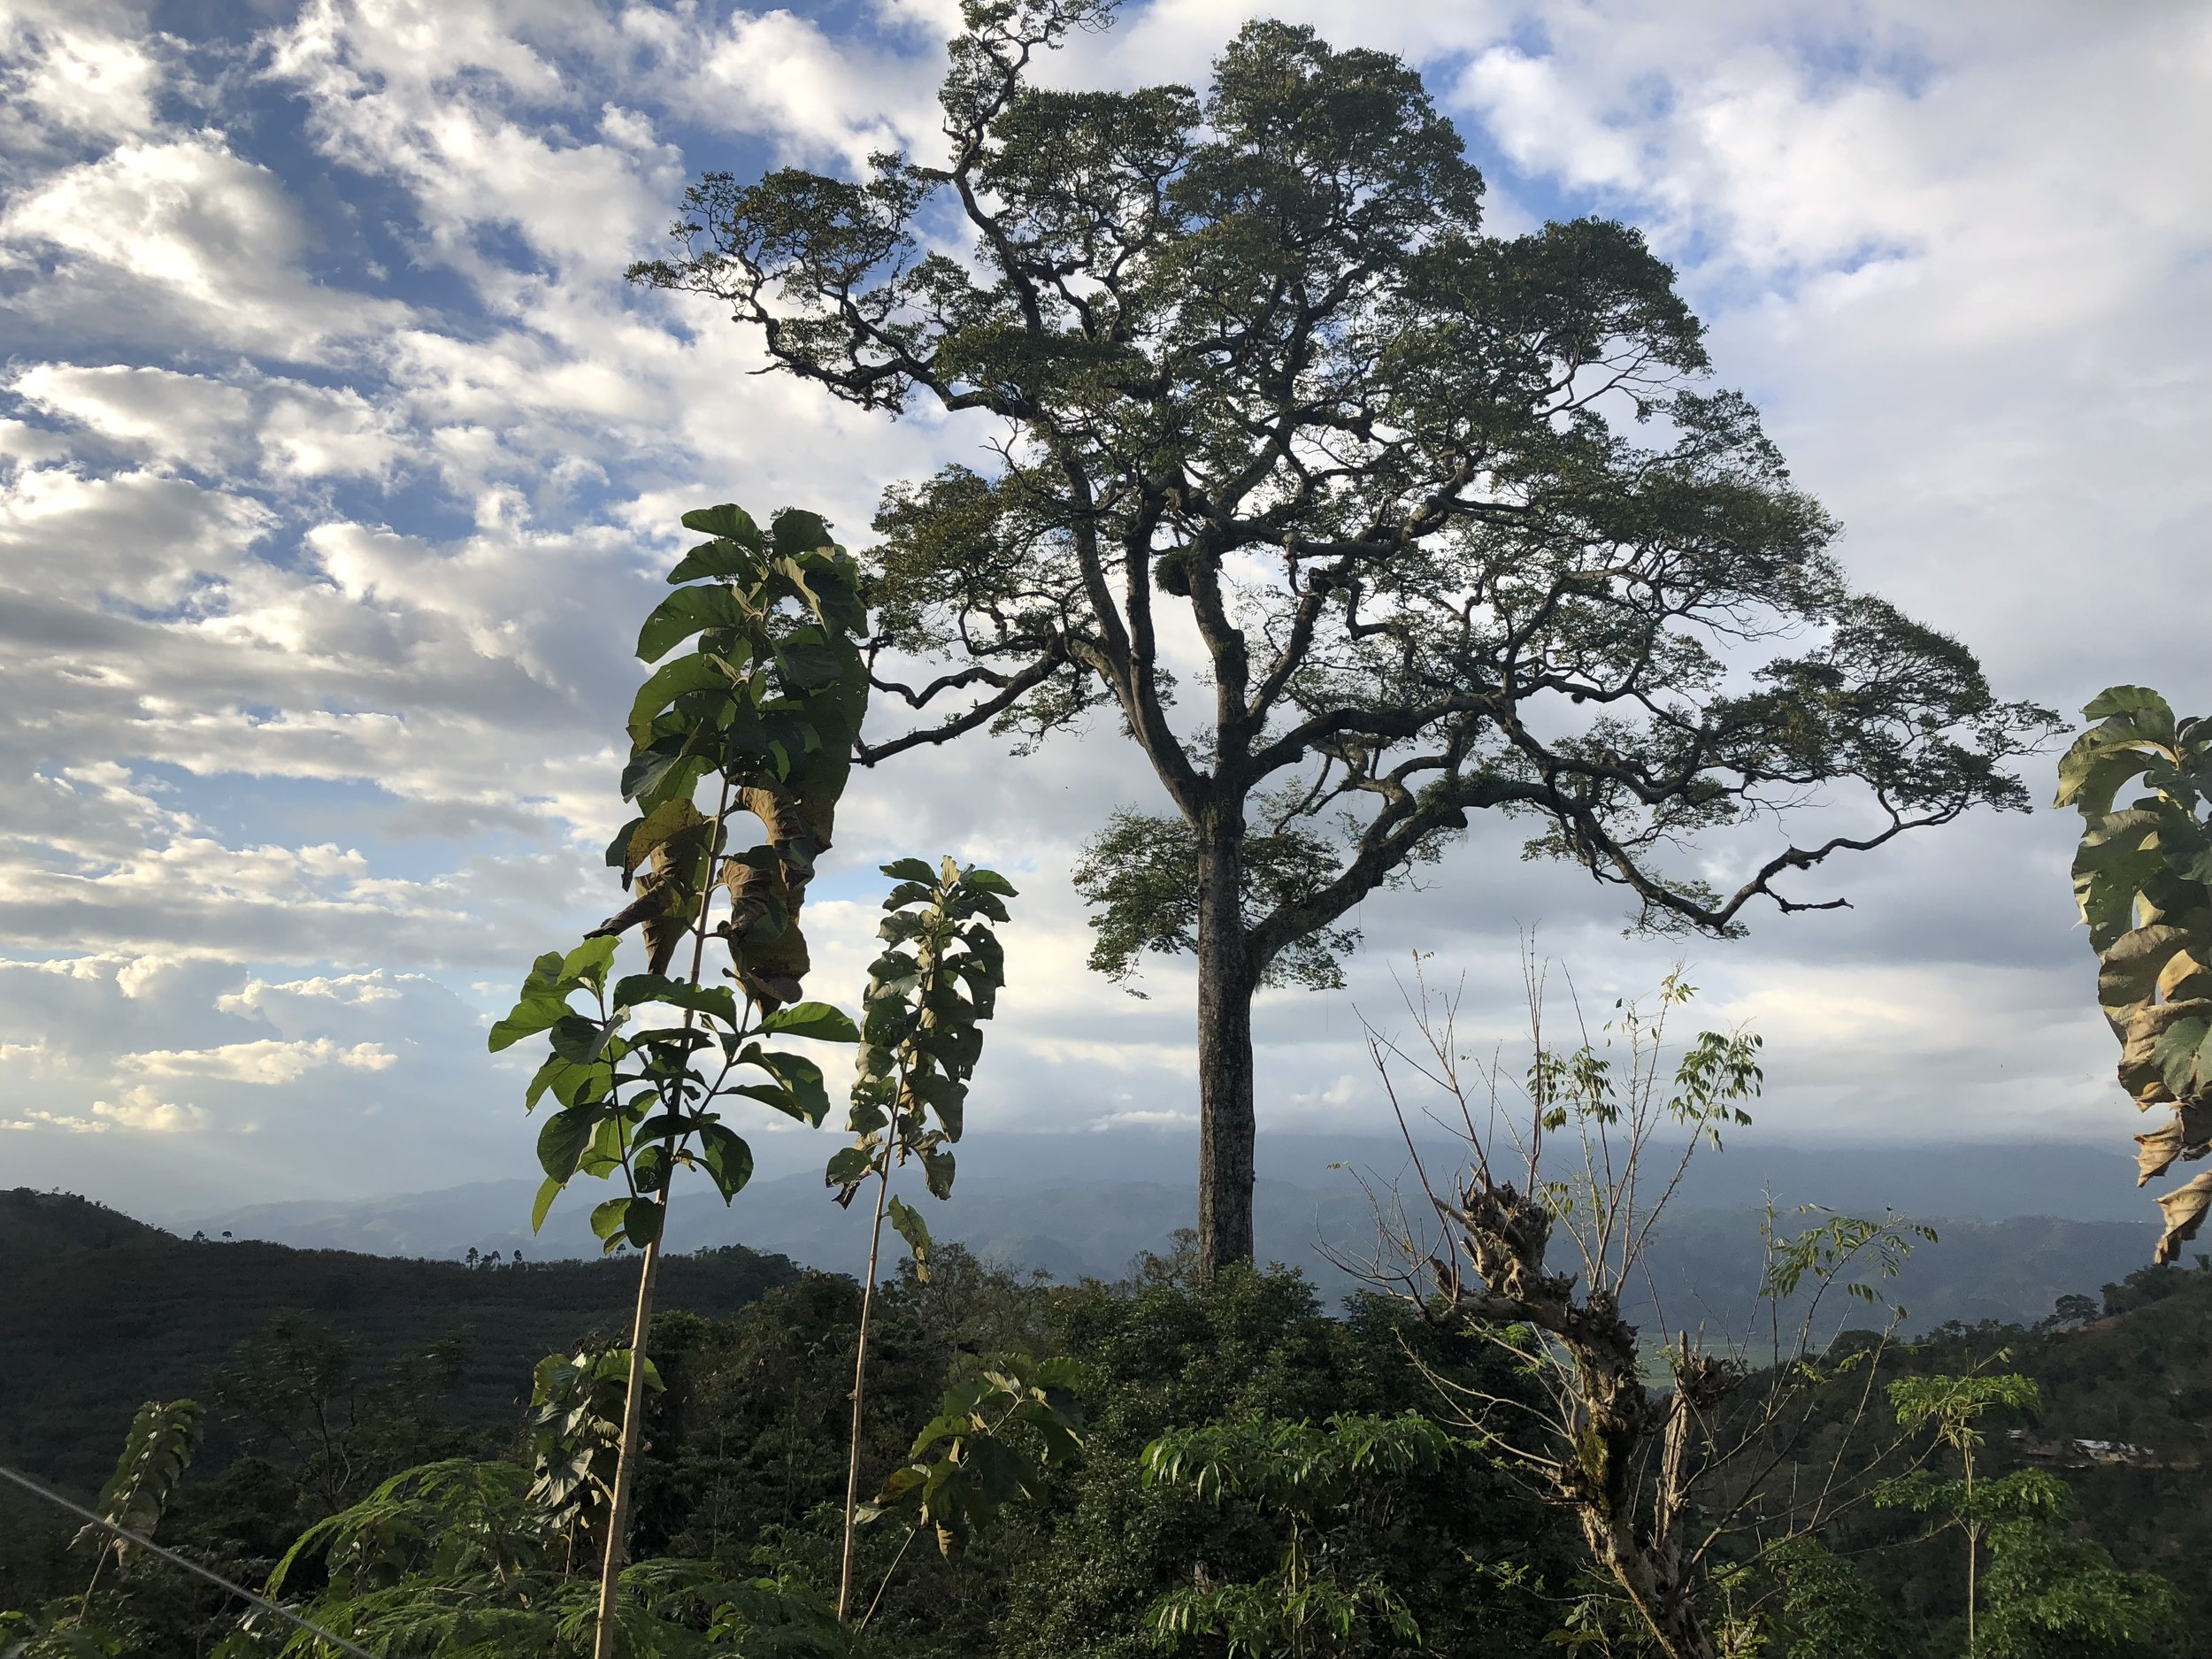 Hearts around the world... - Read first hand how One World has brought DaliLeo Cacao to folks from all over with all one common love: Cacao! See how the changes, expansions, health benefits and overall growth, progress and experiences have shaped the One World family.